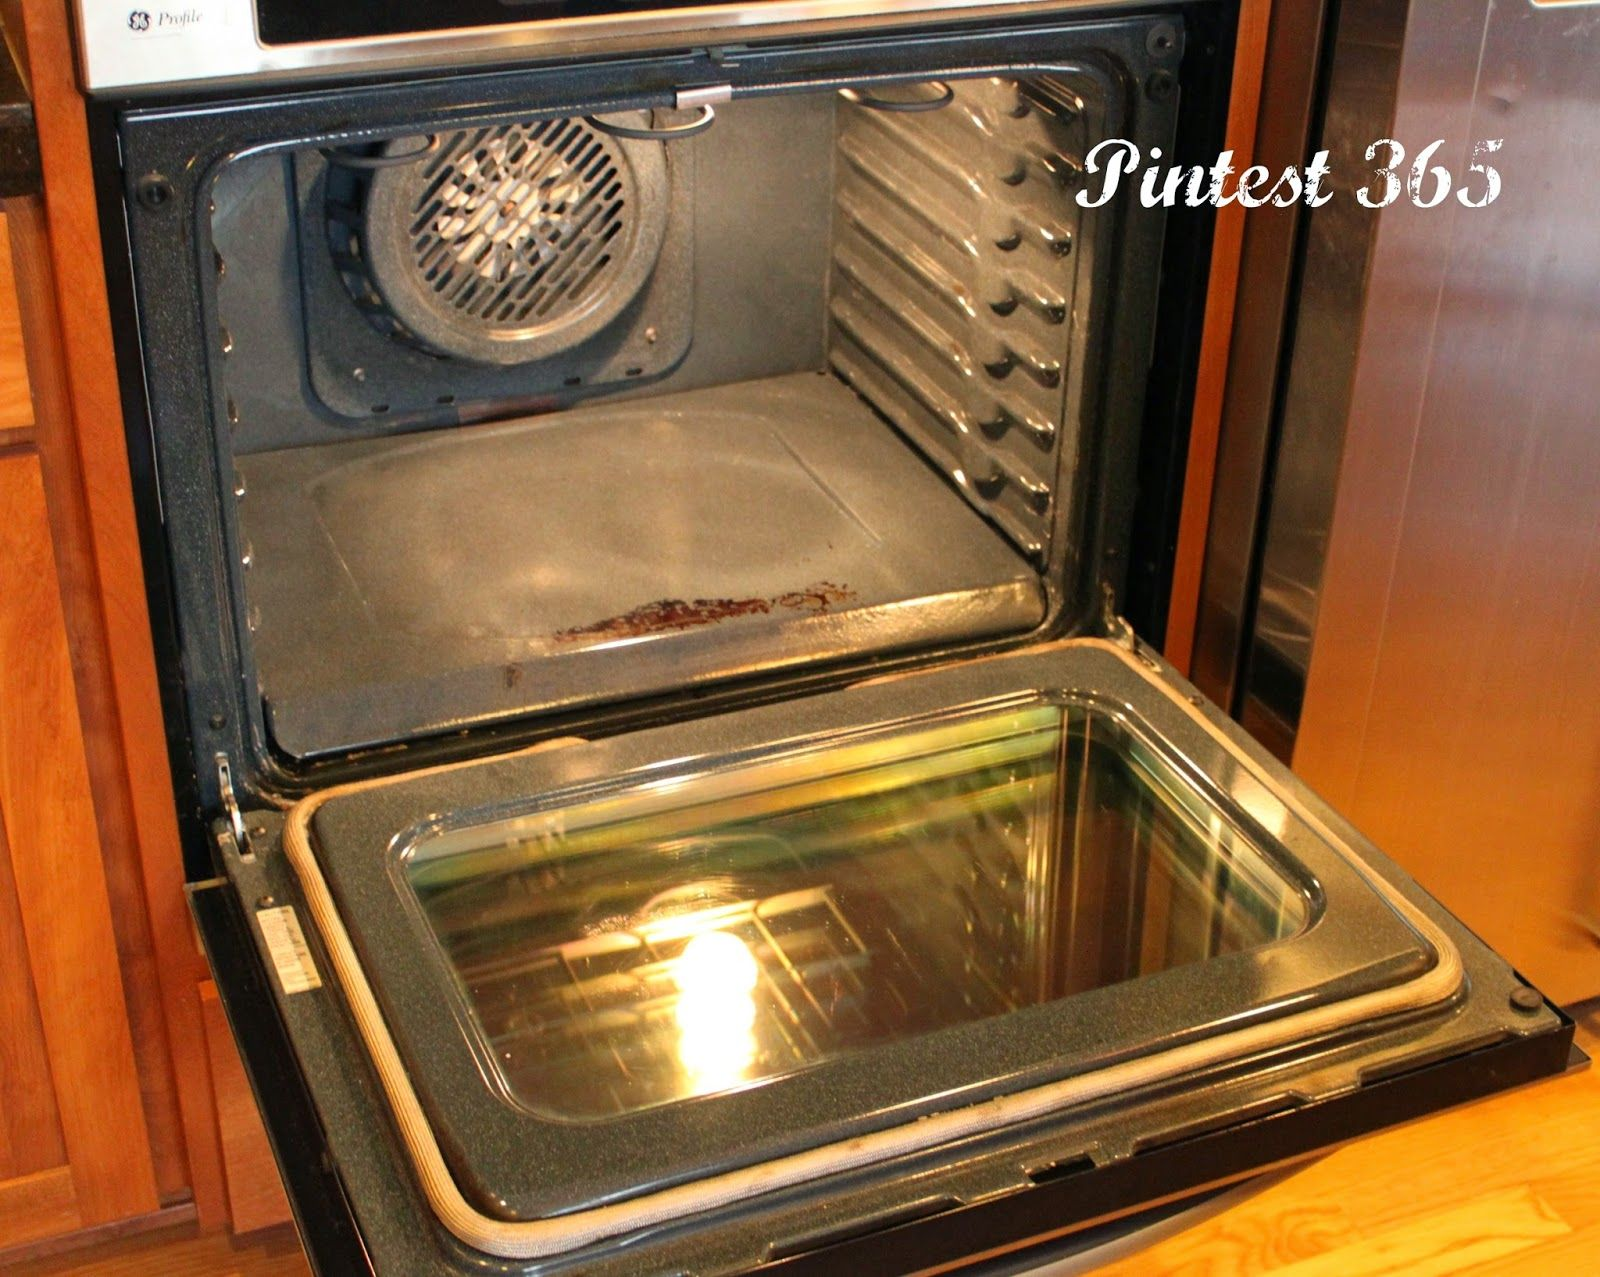 SUCCESS Homemade Oven Cleaner. Oven cleaning